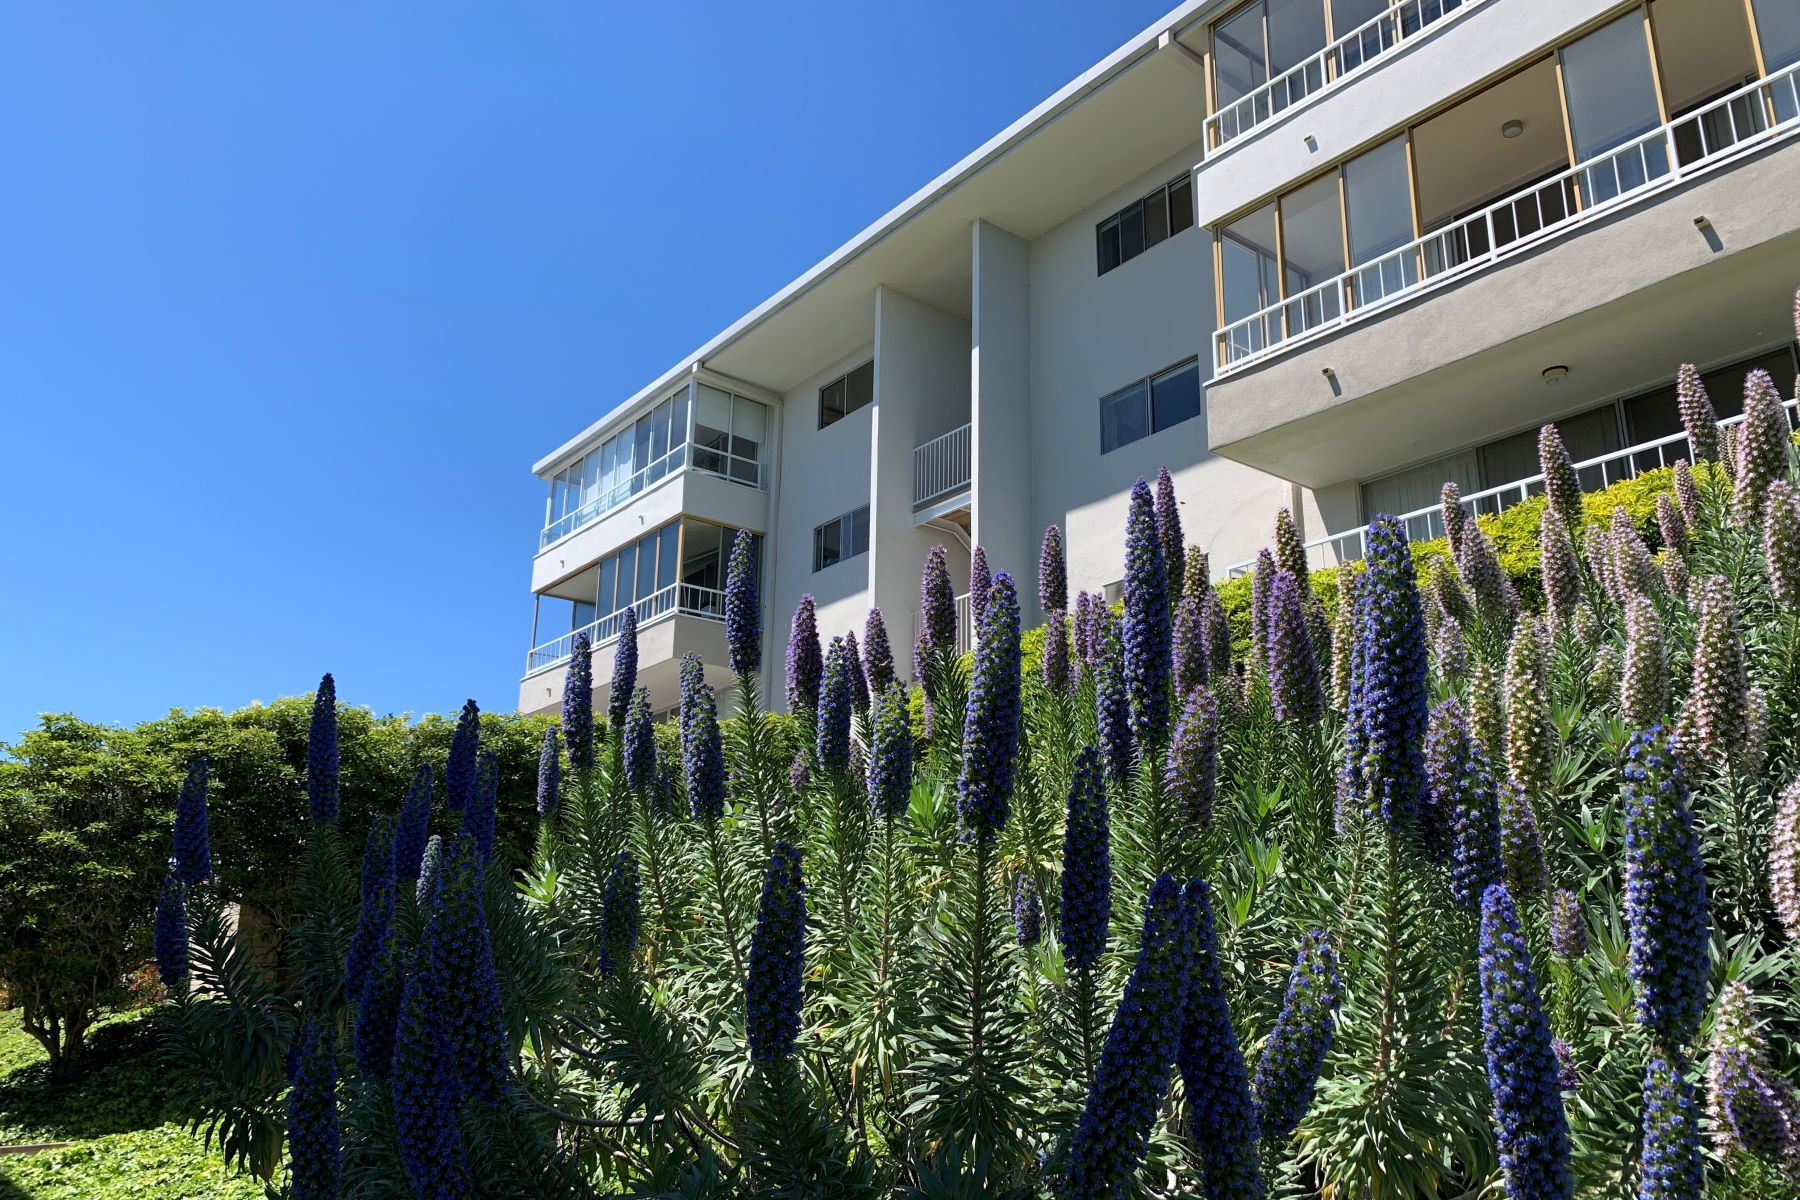 Condominiums for Sale at 32724 Coastsite Drive #203, Rancho Palos Verdes, CA 90275 32724 Coastsite Drive #203 Rancho Palos Verdes, California 90275 United States